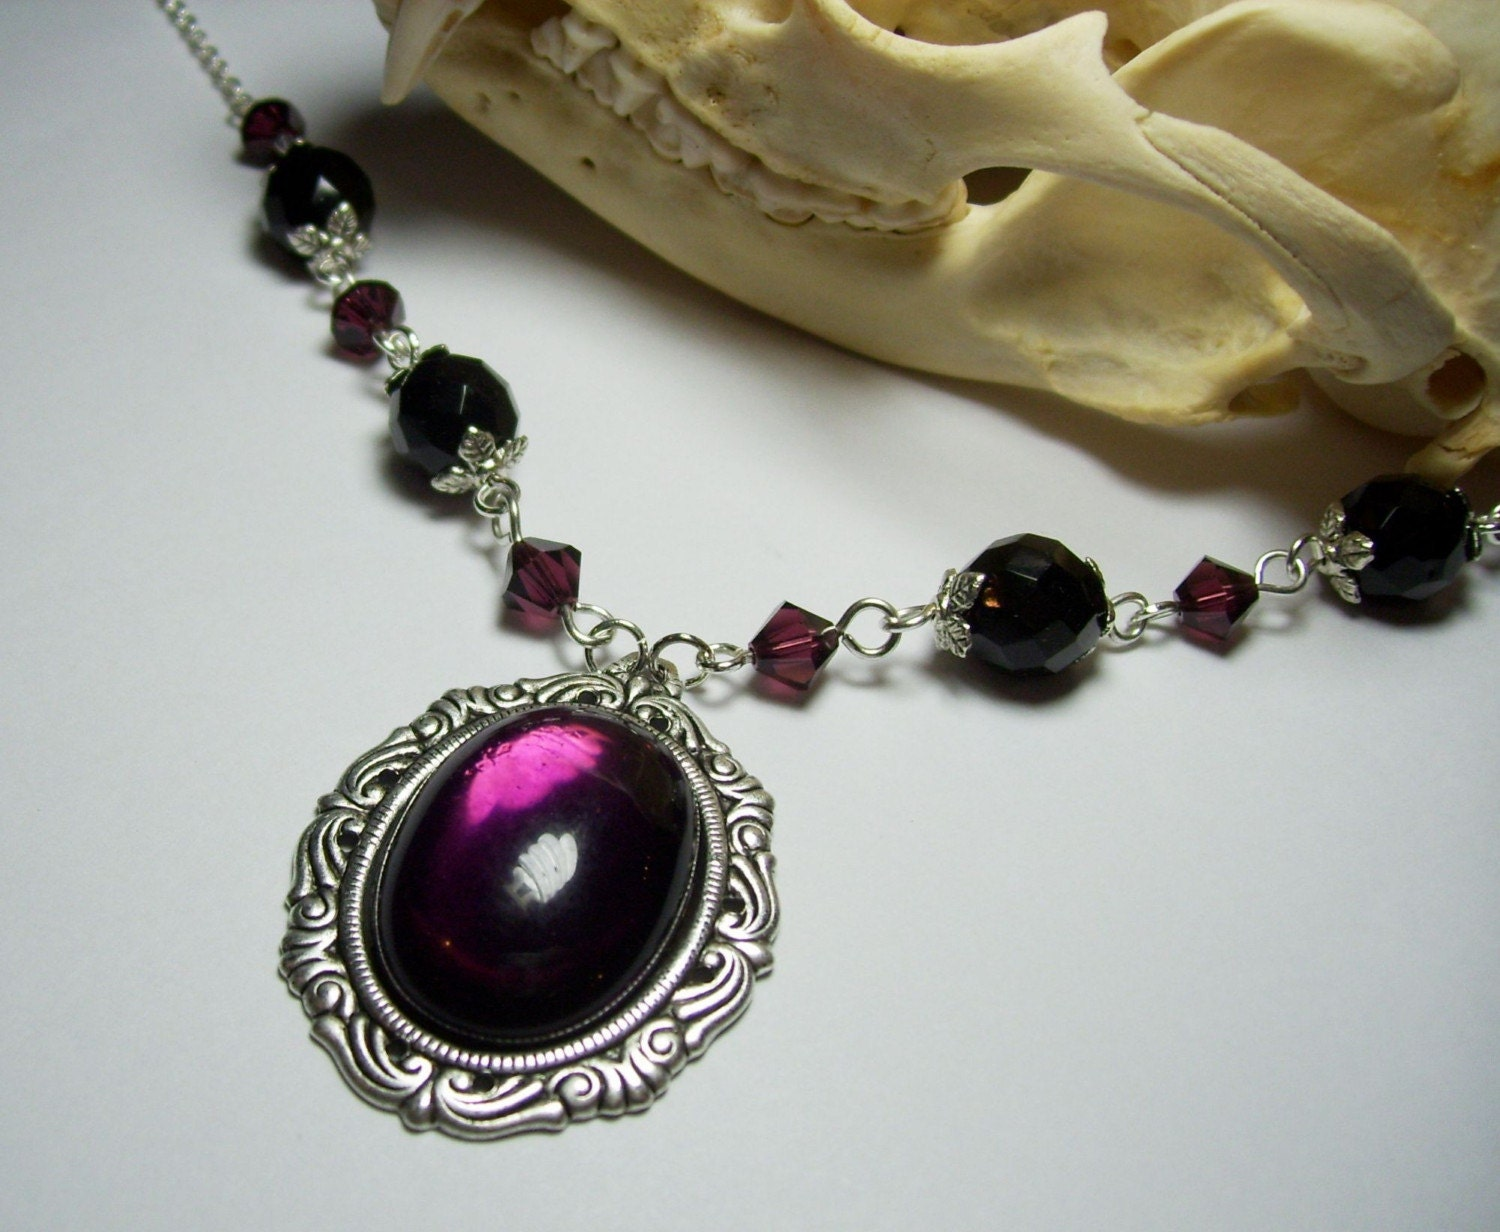 Beautiful Antique Silver Genuine Vintage German Glass Purple Amethyst  Cabochon Neo Victorian Steampunk Pendant Necklace